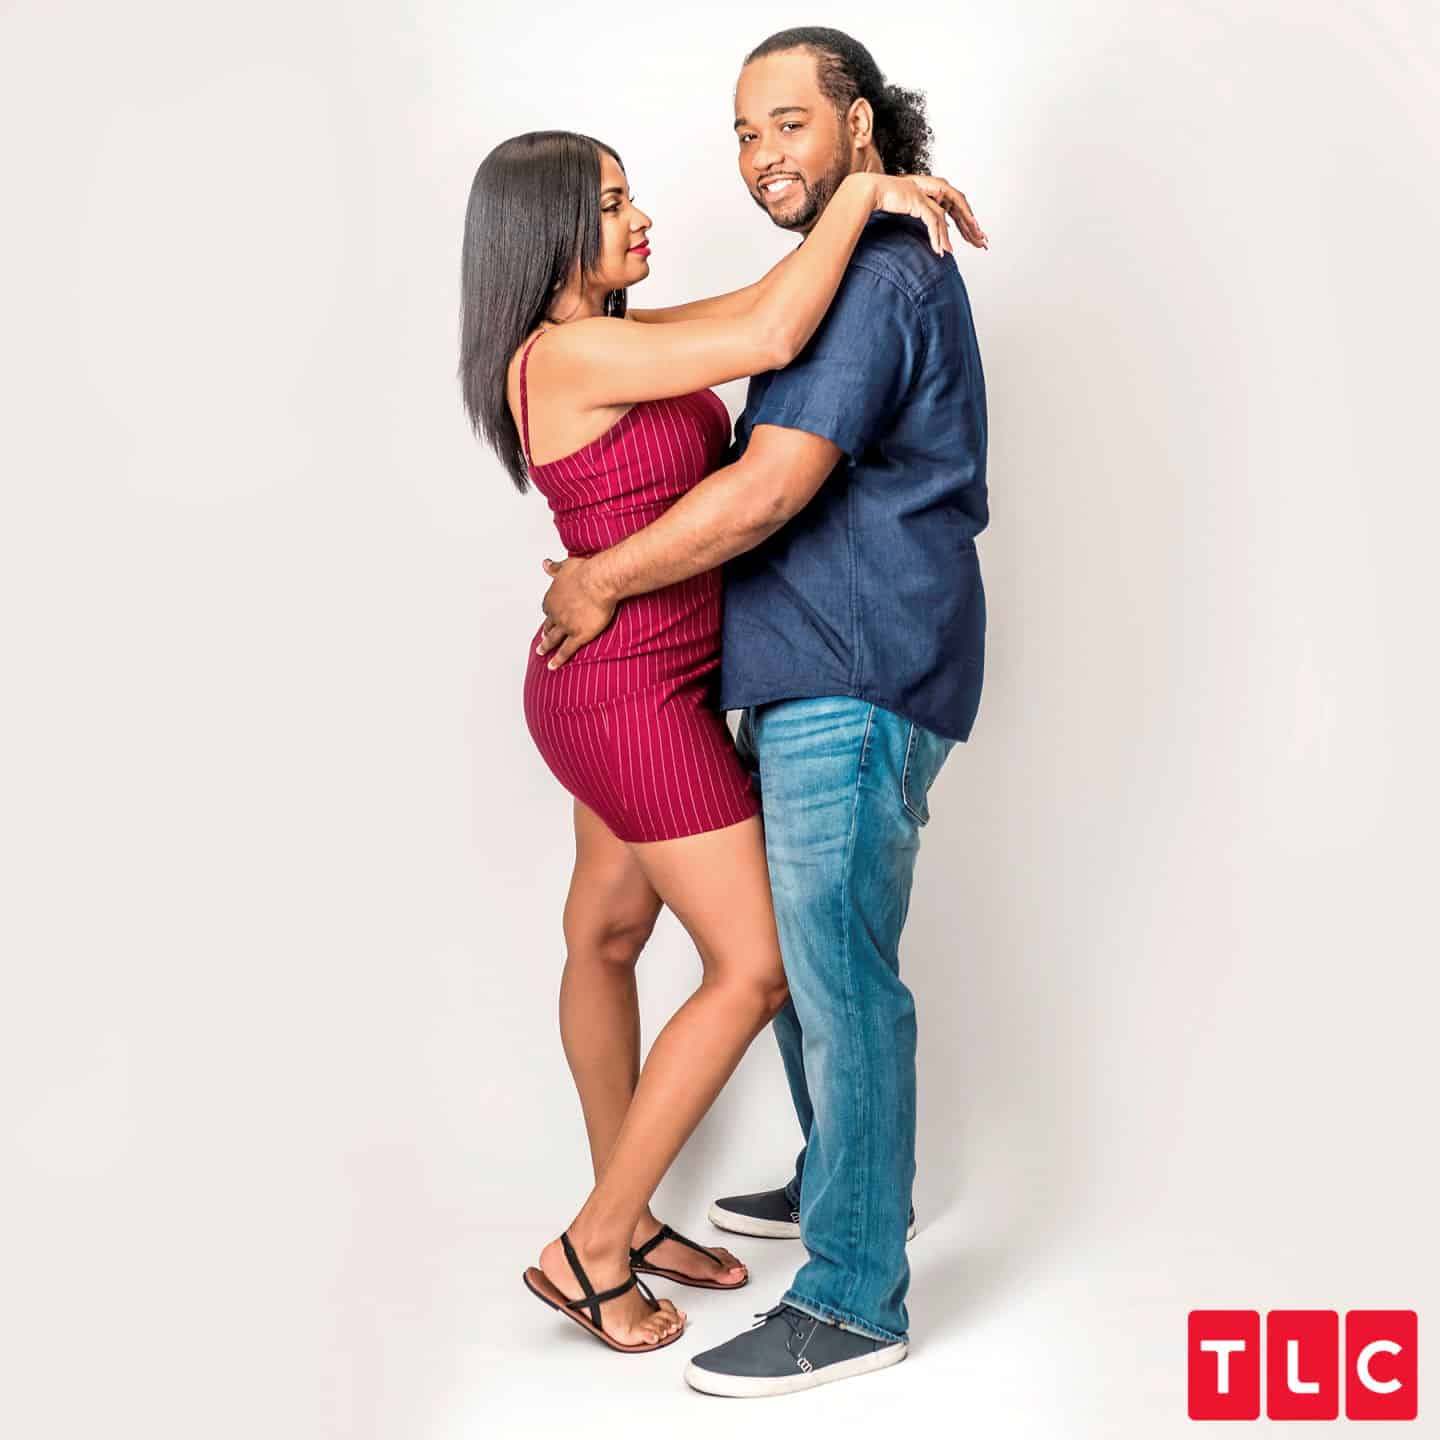 TLC 90 Day Fiance Season 7 Cast Robert and Anny